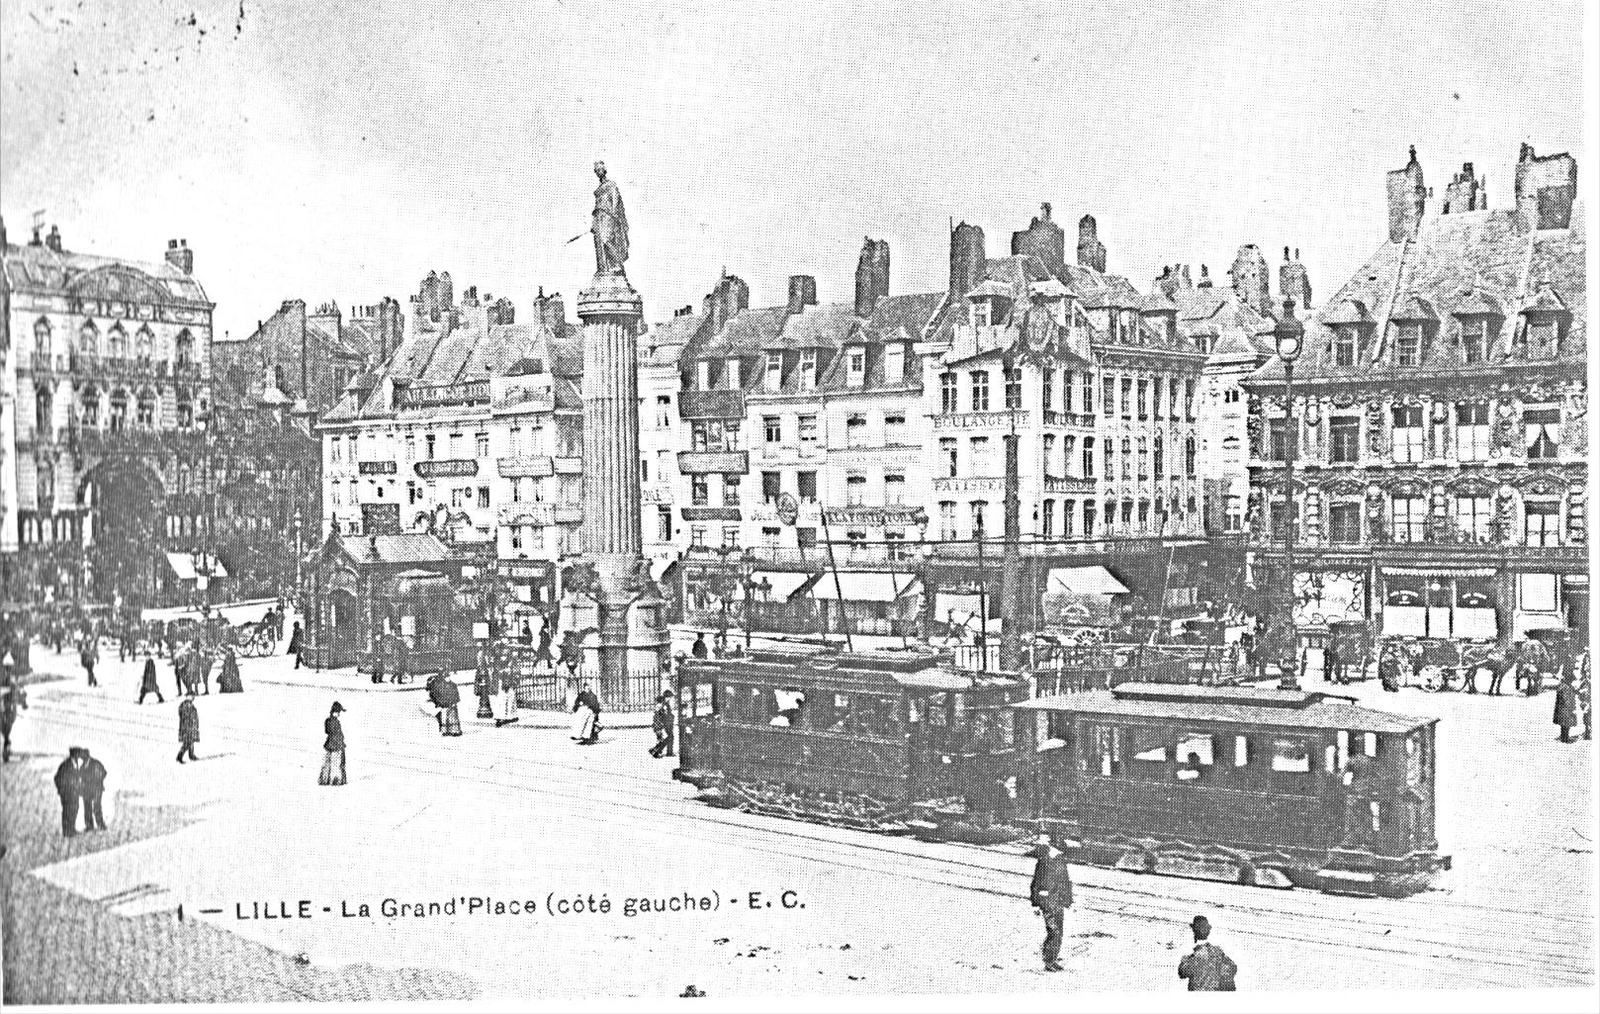 Le tramway Grand Place en 1905